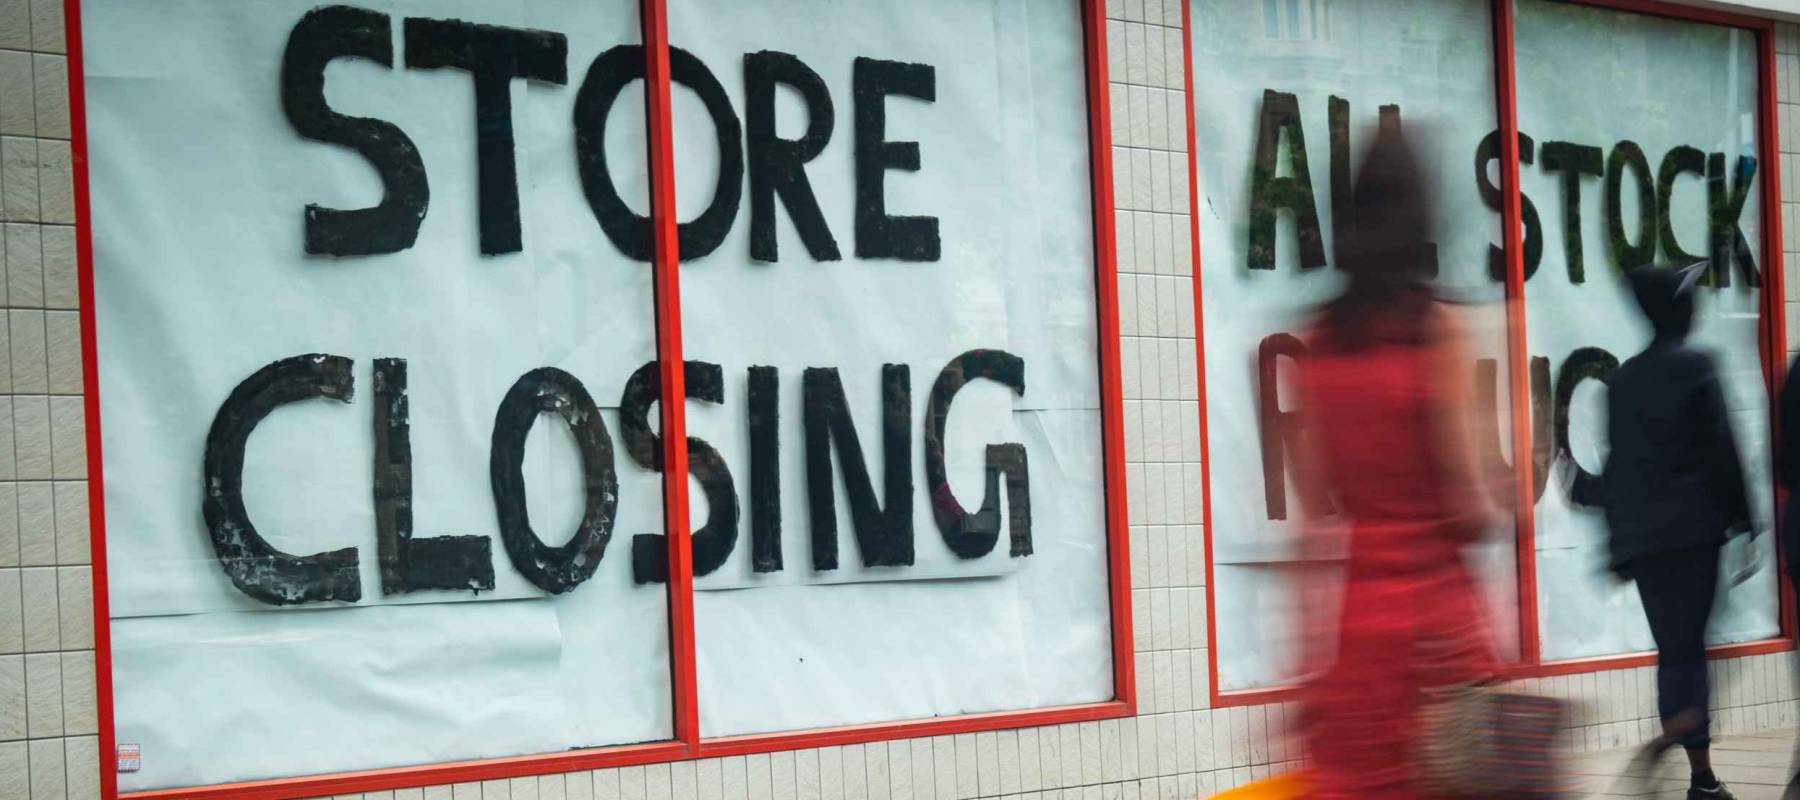 High Street 'Store Closing' sign with motion blurred shopper walking past